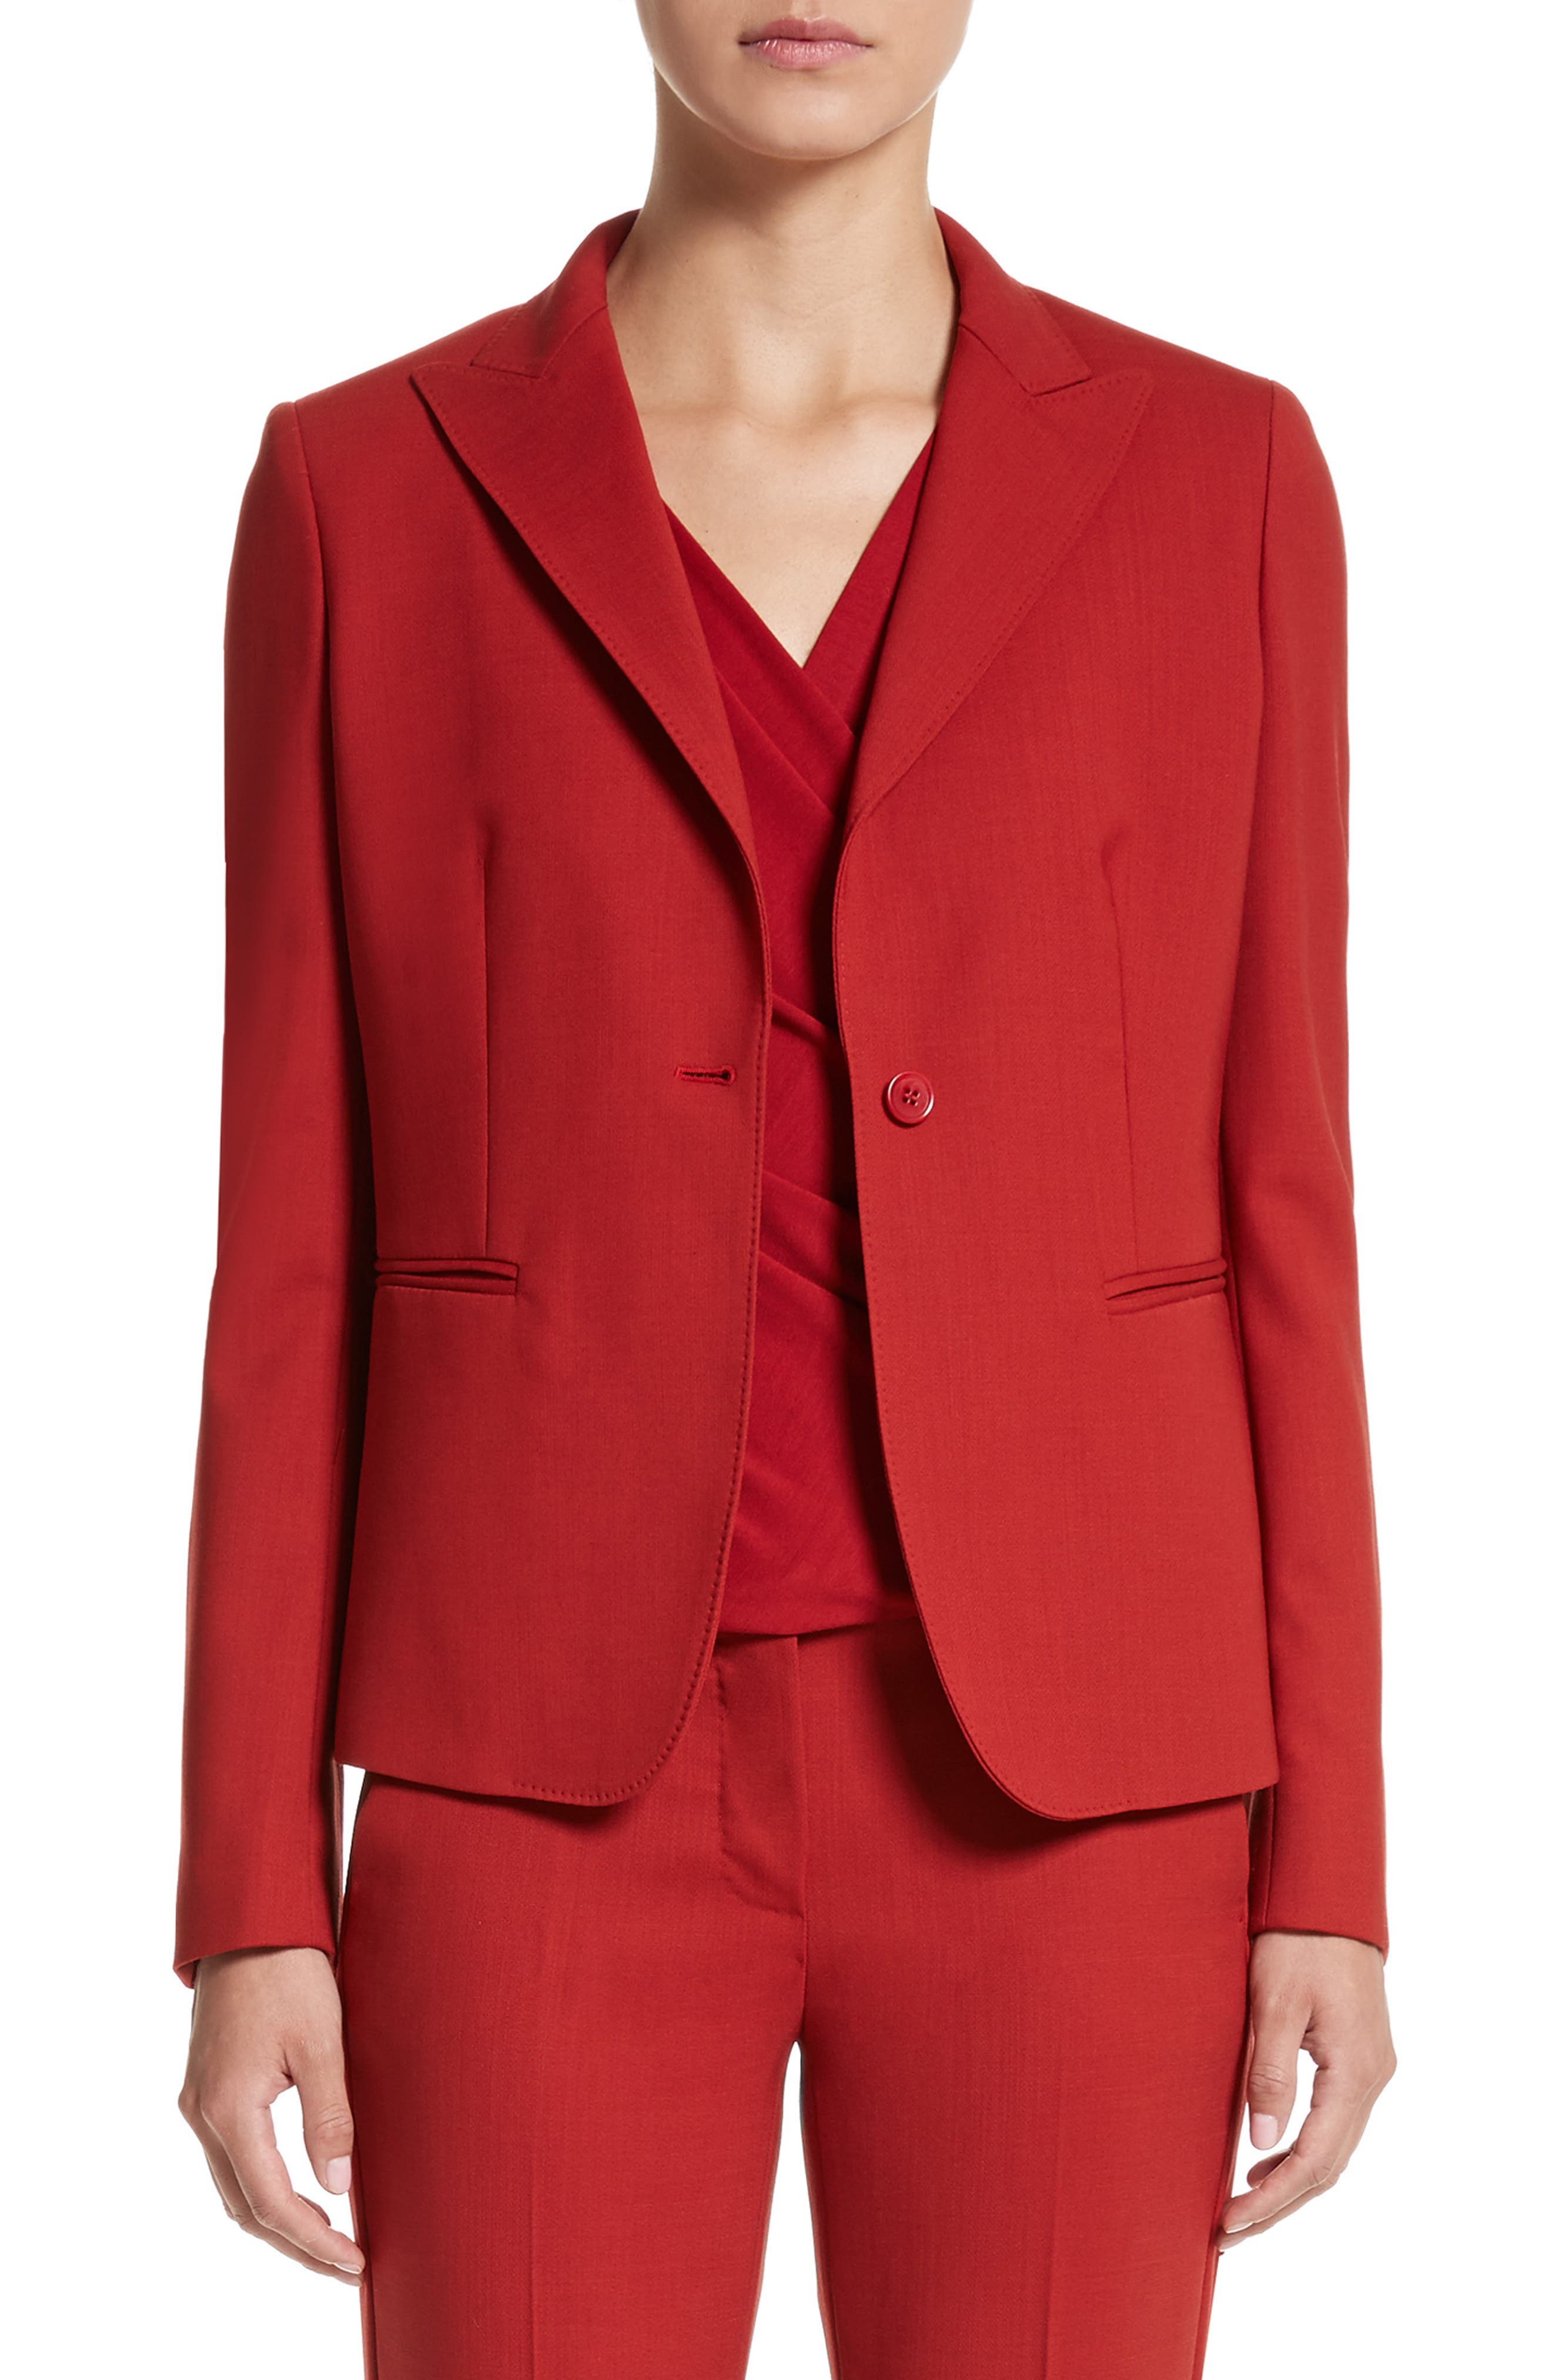 Umile Stretch Wool Jacket,                             Main thumbnail 1, color,                             614